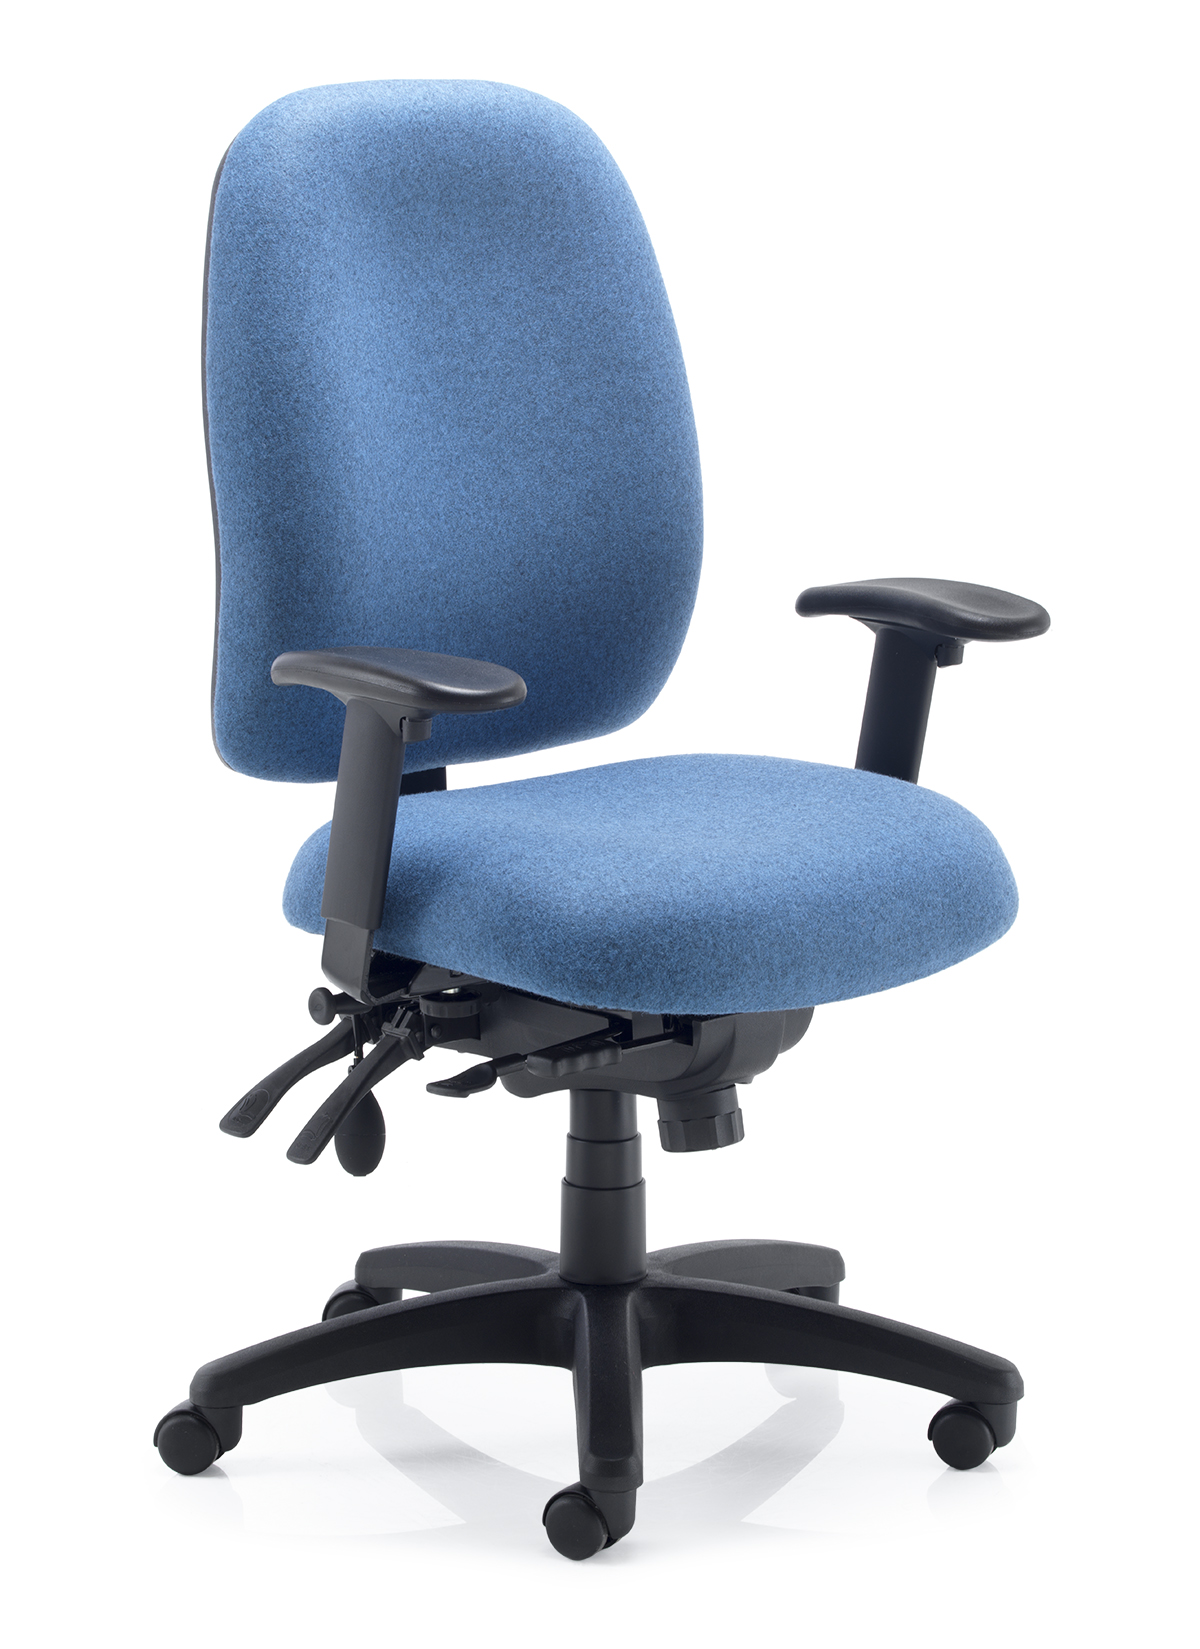 PSI HIGH BACK POSTURE CHAIR WITH ARMS